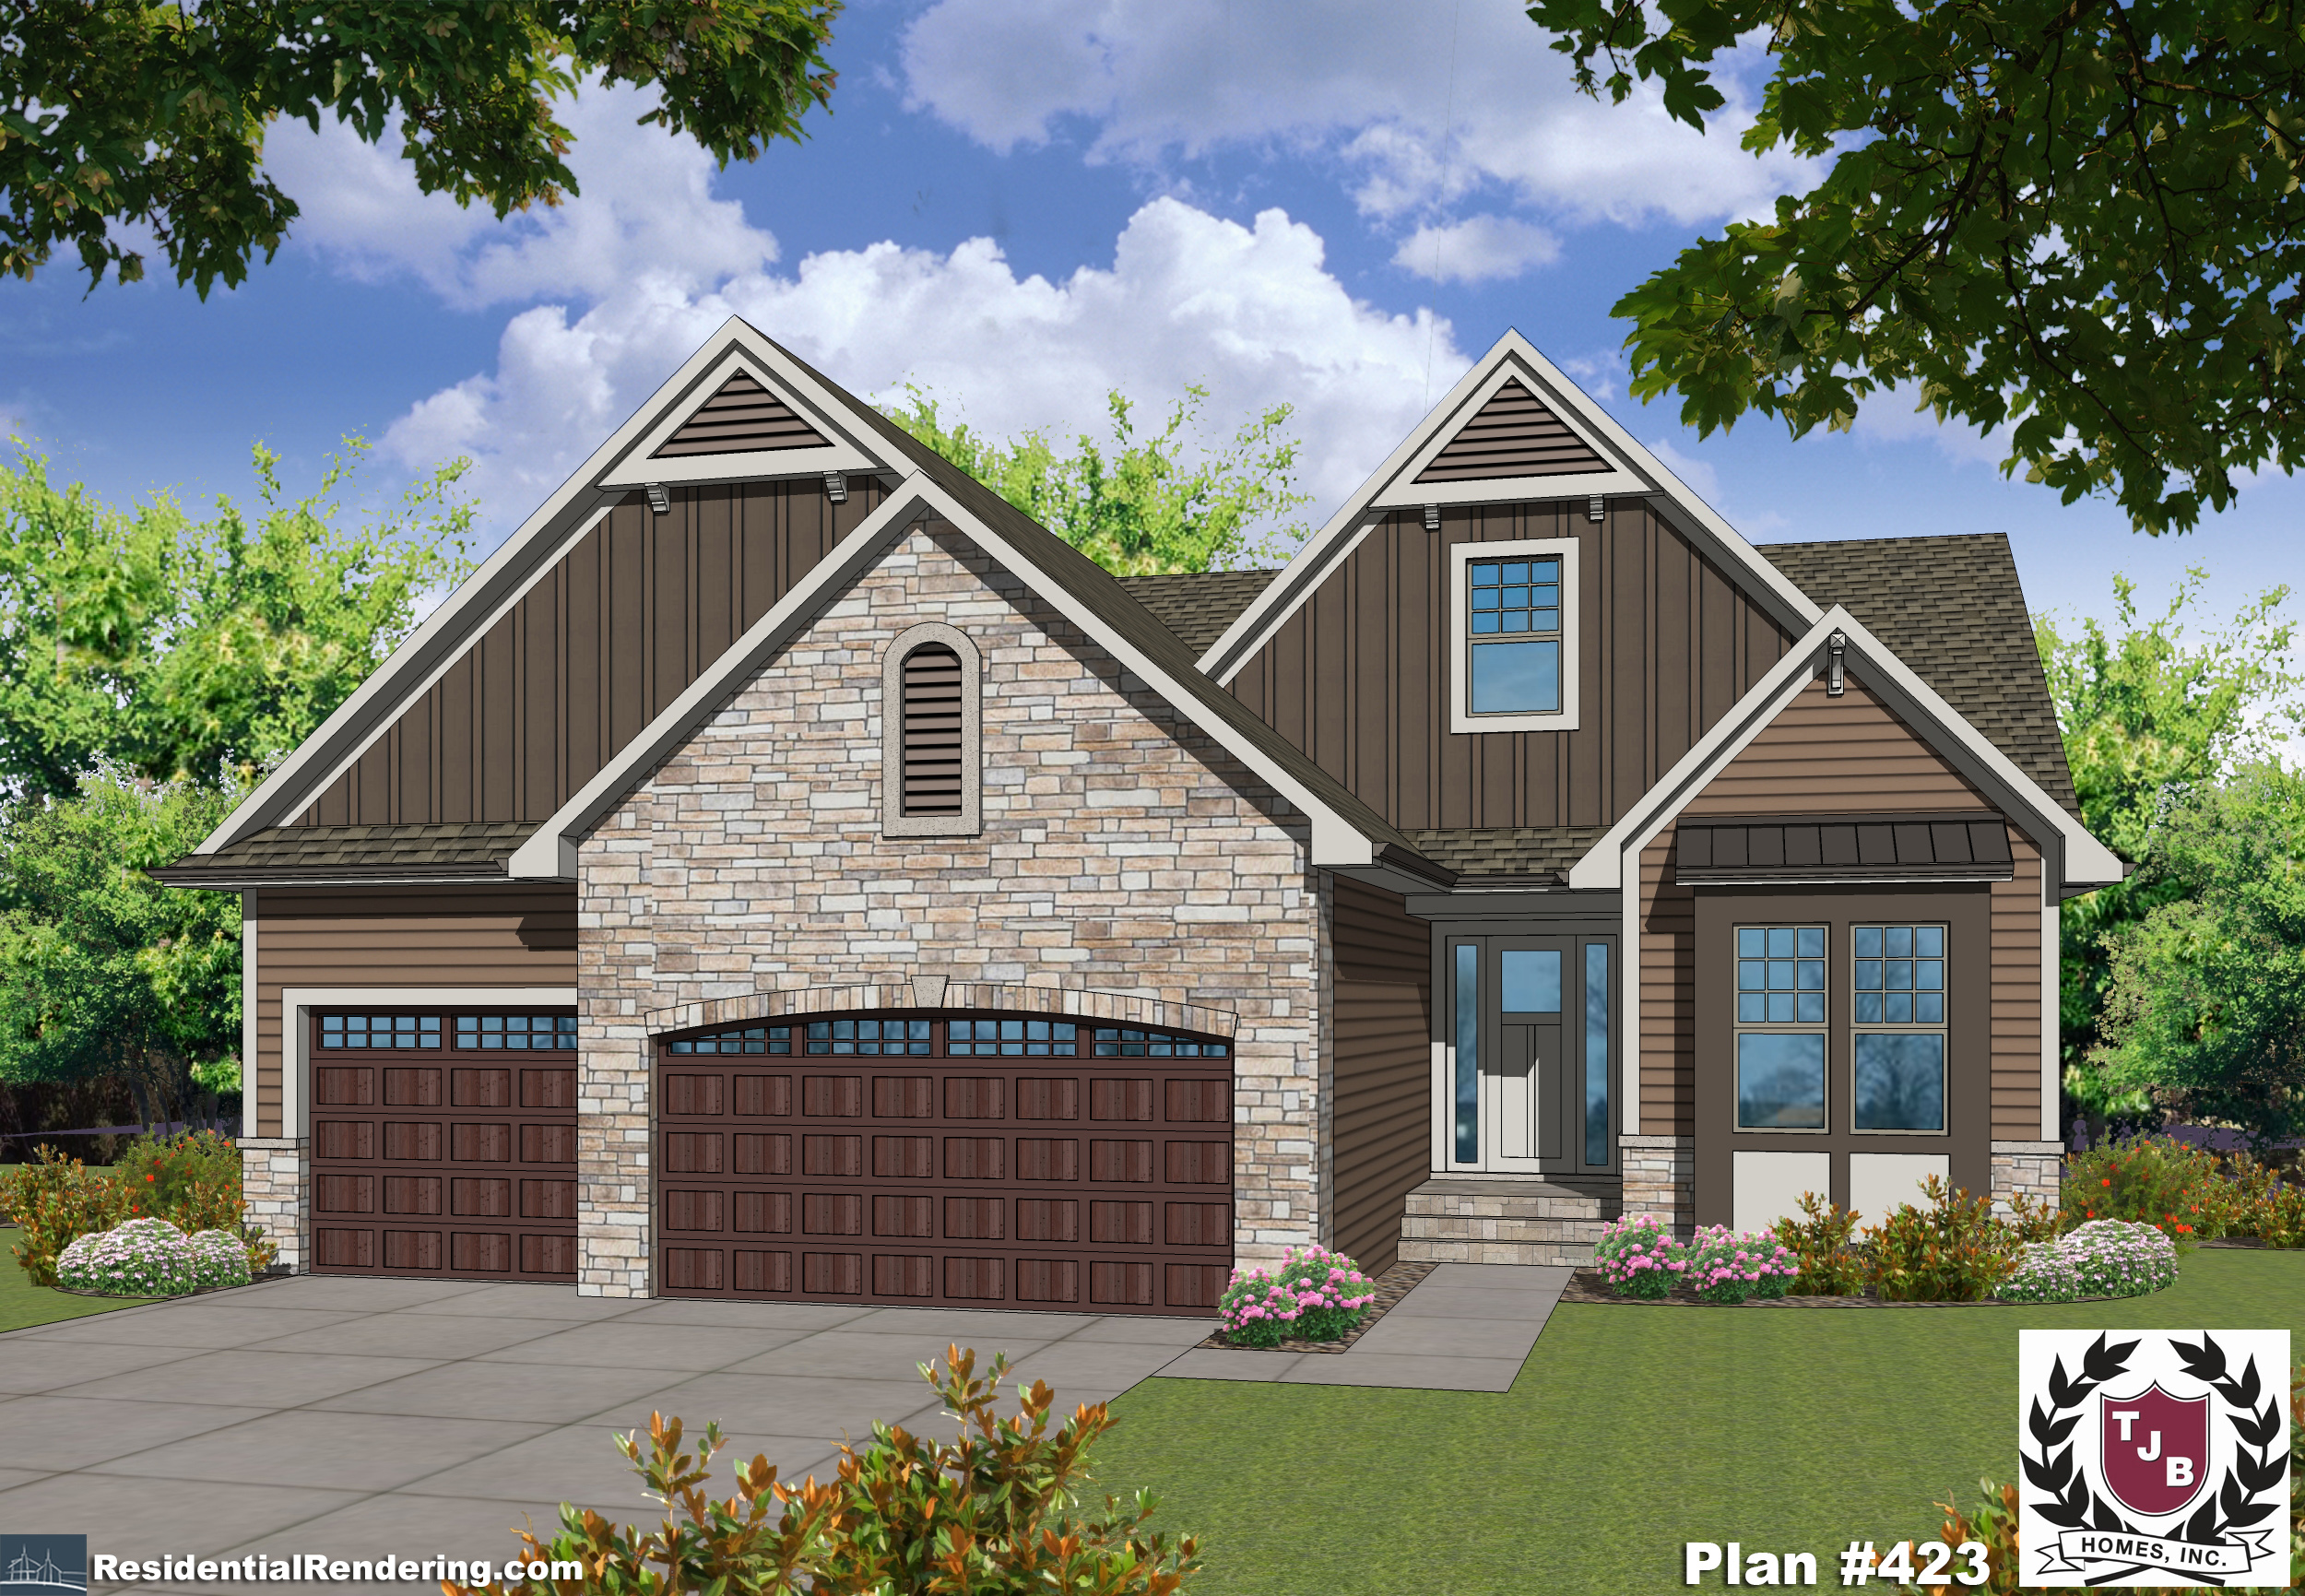 Great exterior design - color rendering of home plan